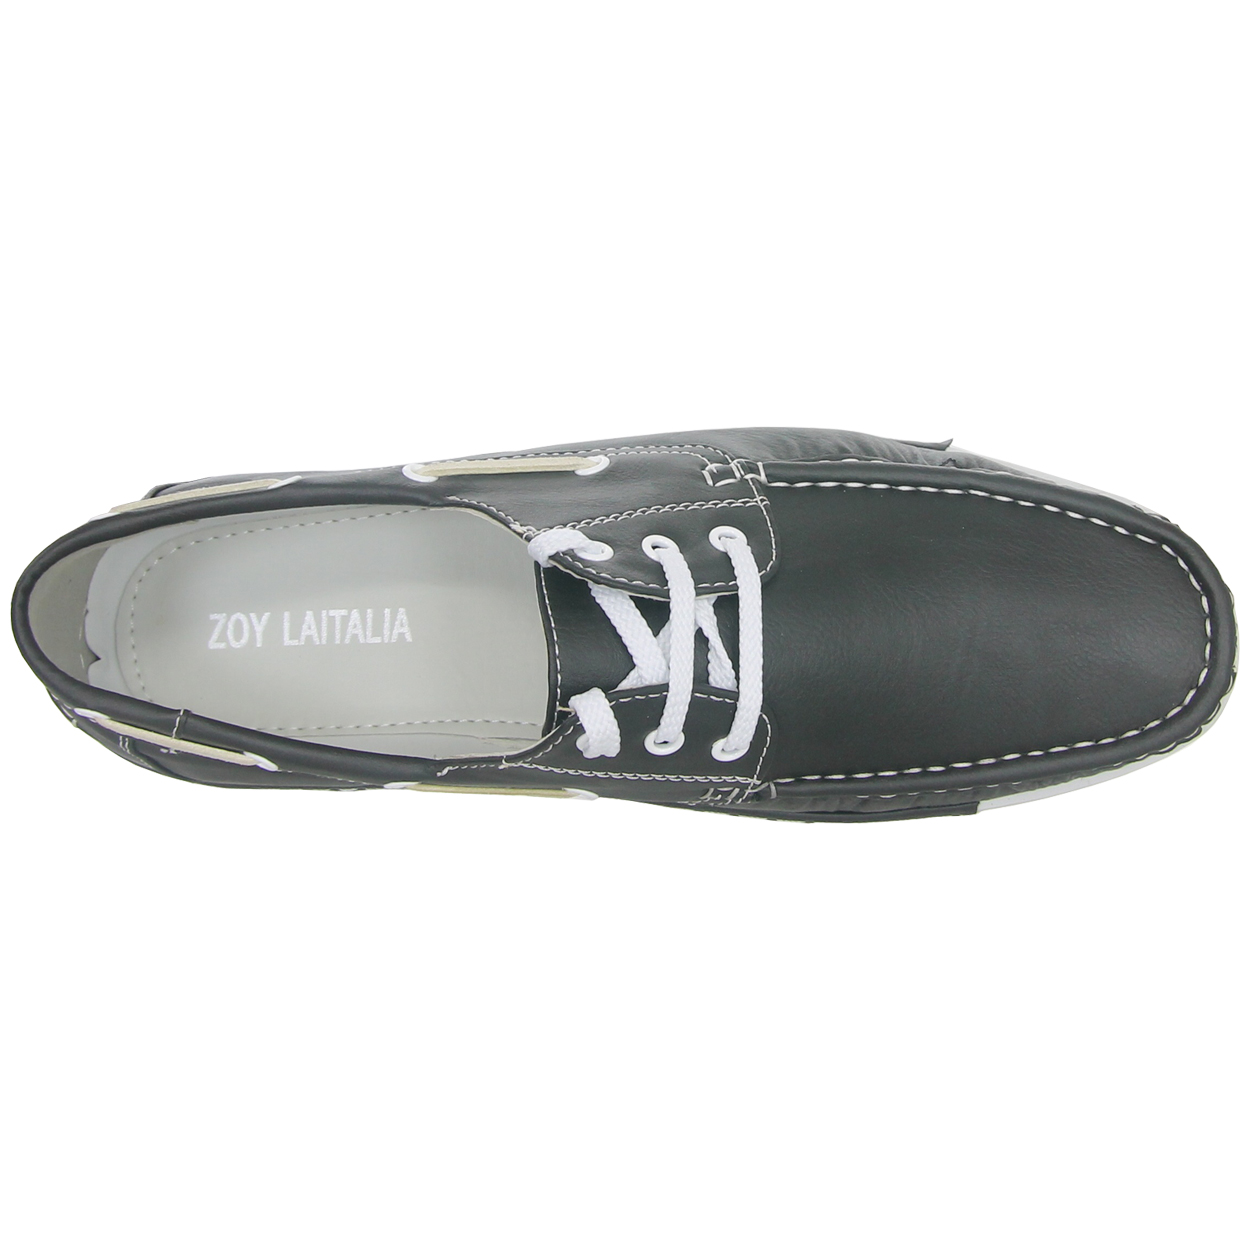 Zoyla-Italia-Men-039-s-Boat-Shoe-by-Alessio-Brand-NEW thumbnail 15